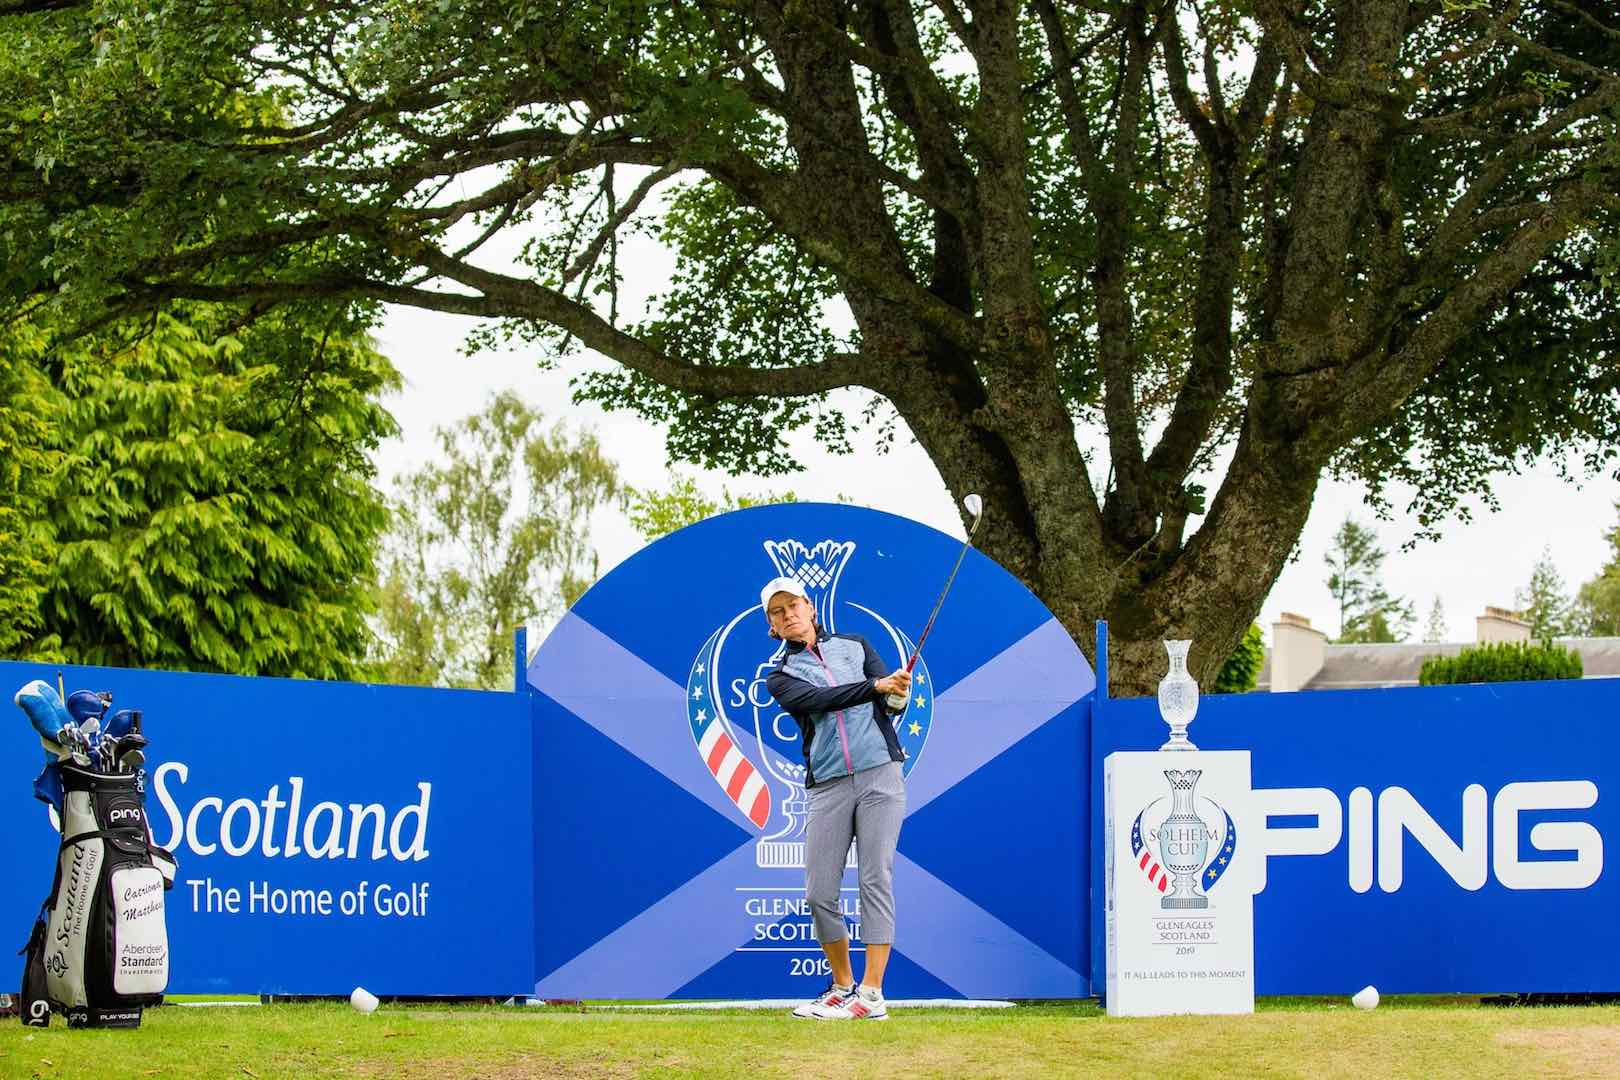 Solheim Cup could spark rise in female golfing visitors